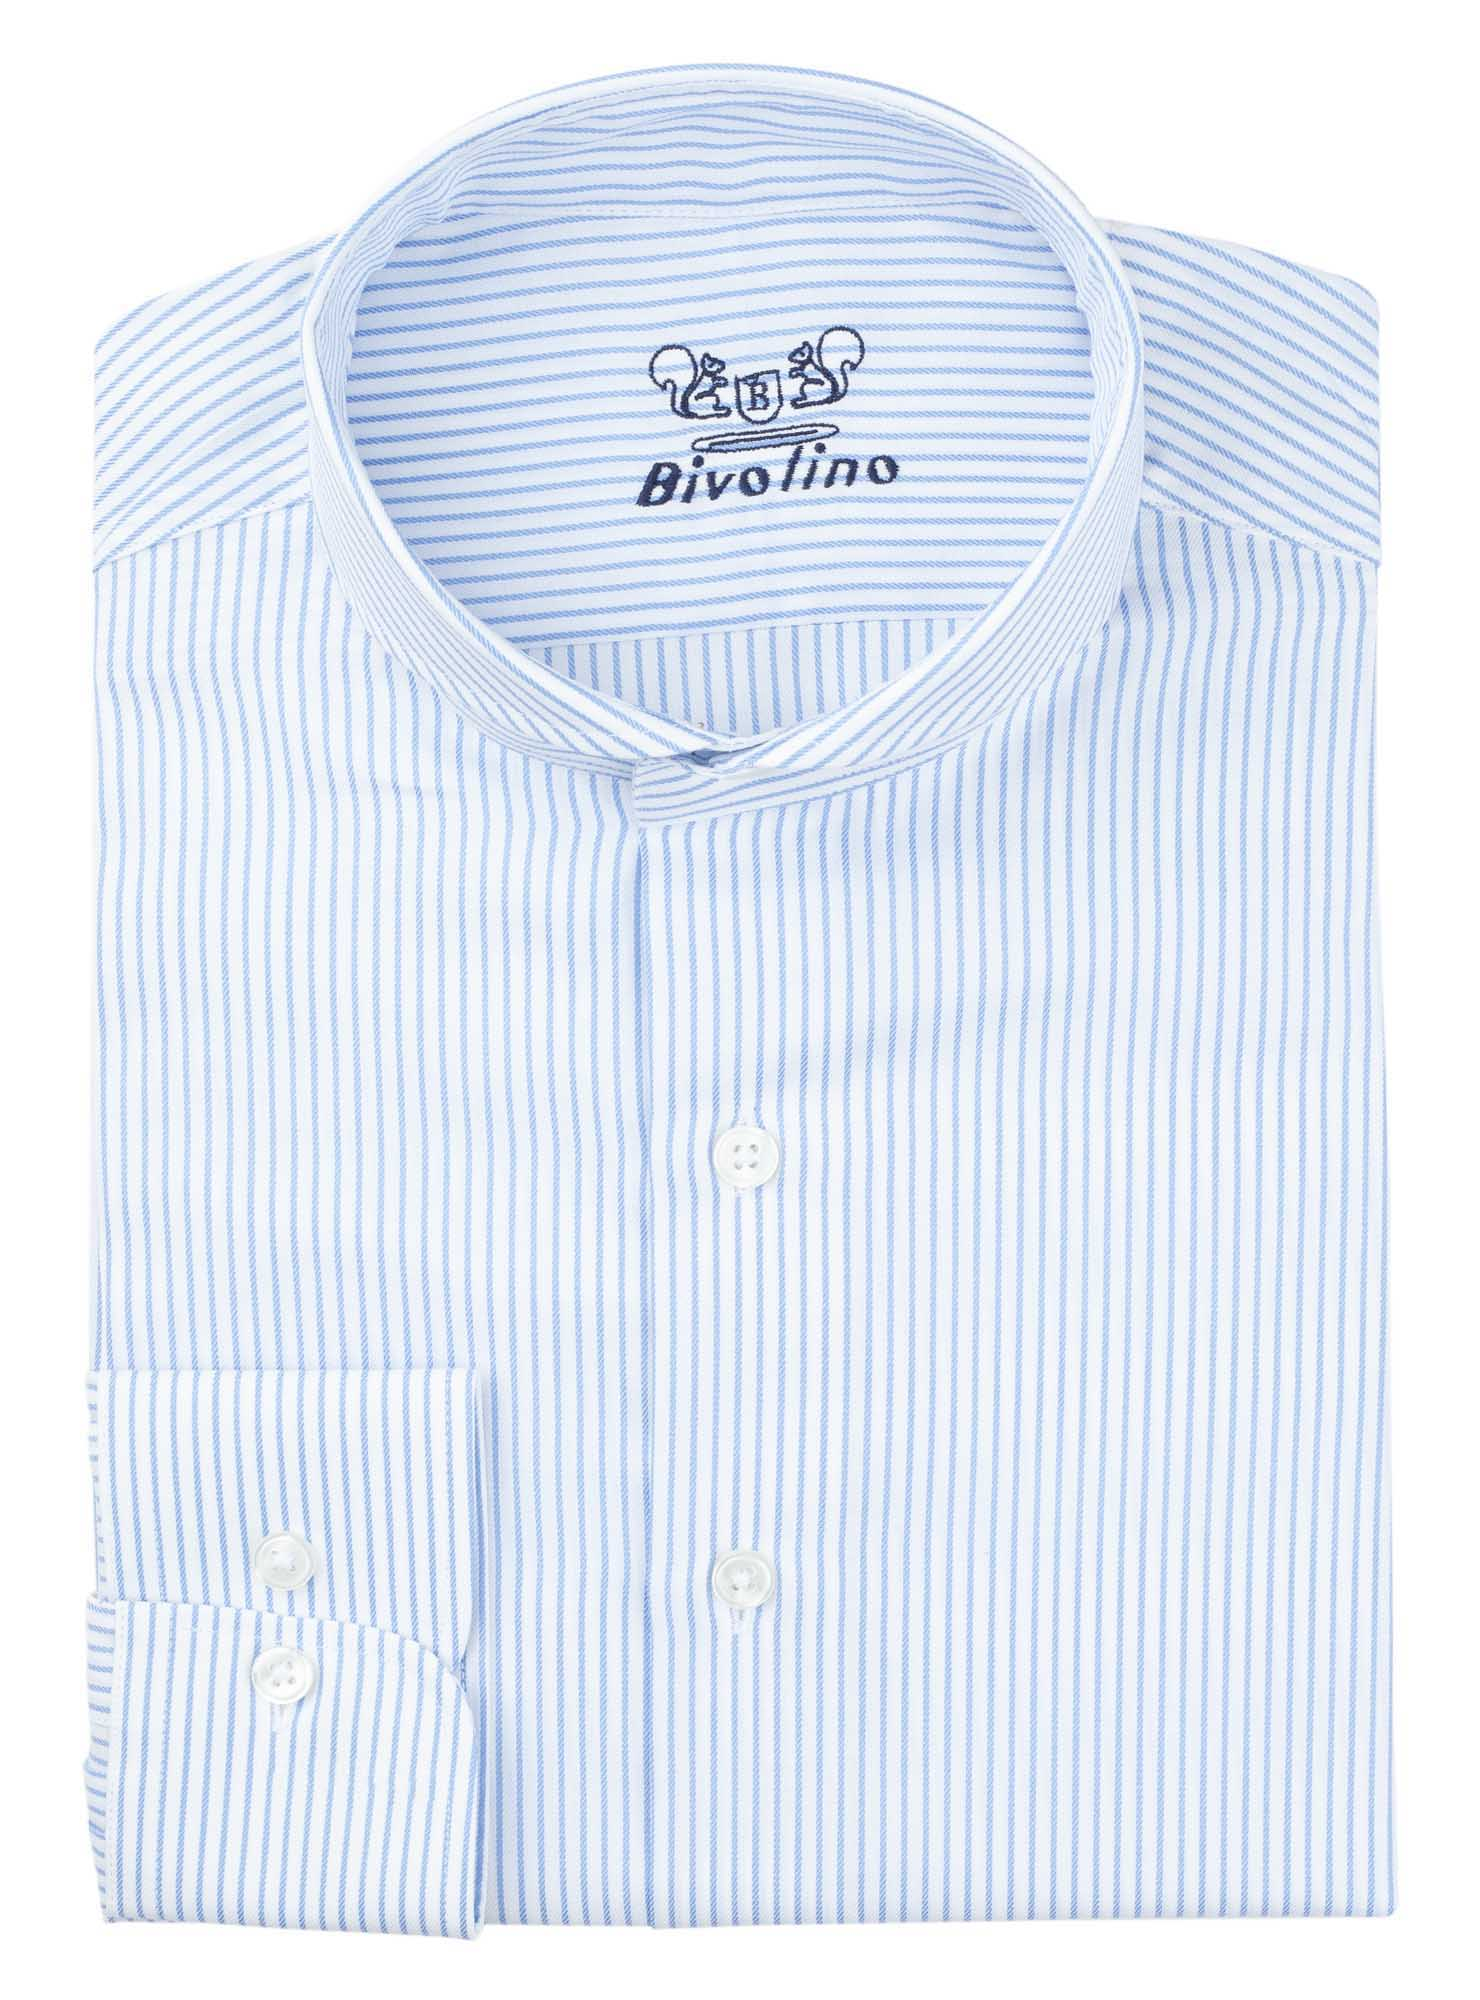 PIACENZA - Men's Shirt Cotton anti-stains and repellent - INDUO 2